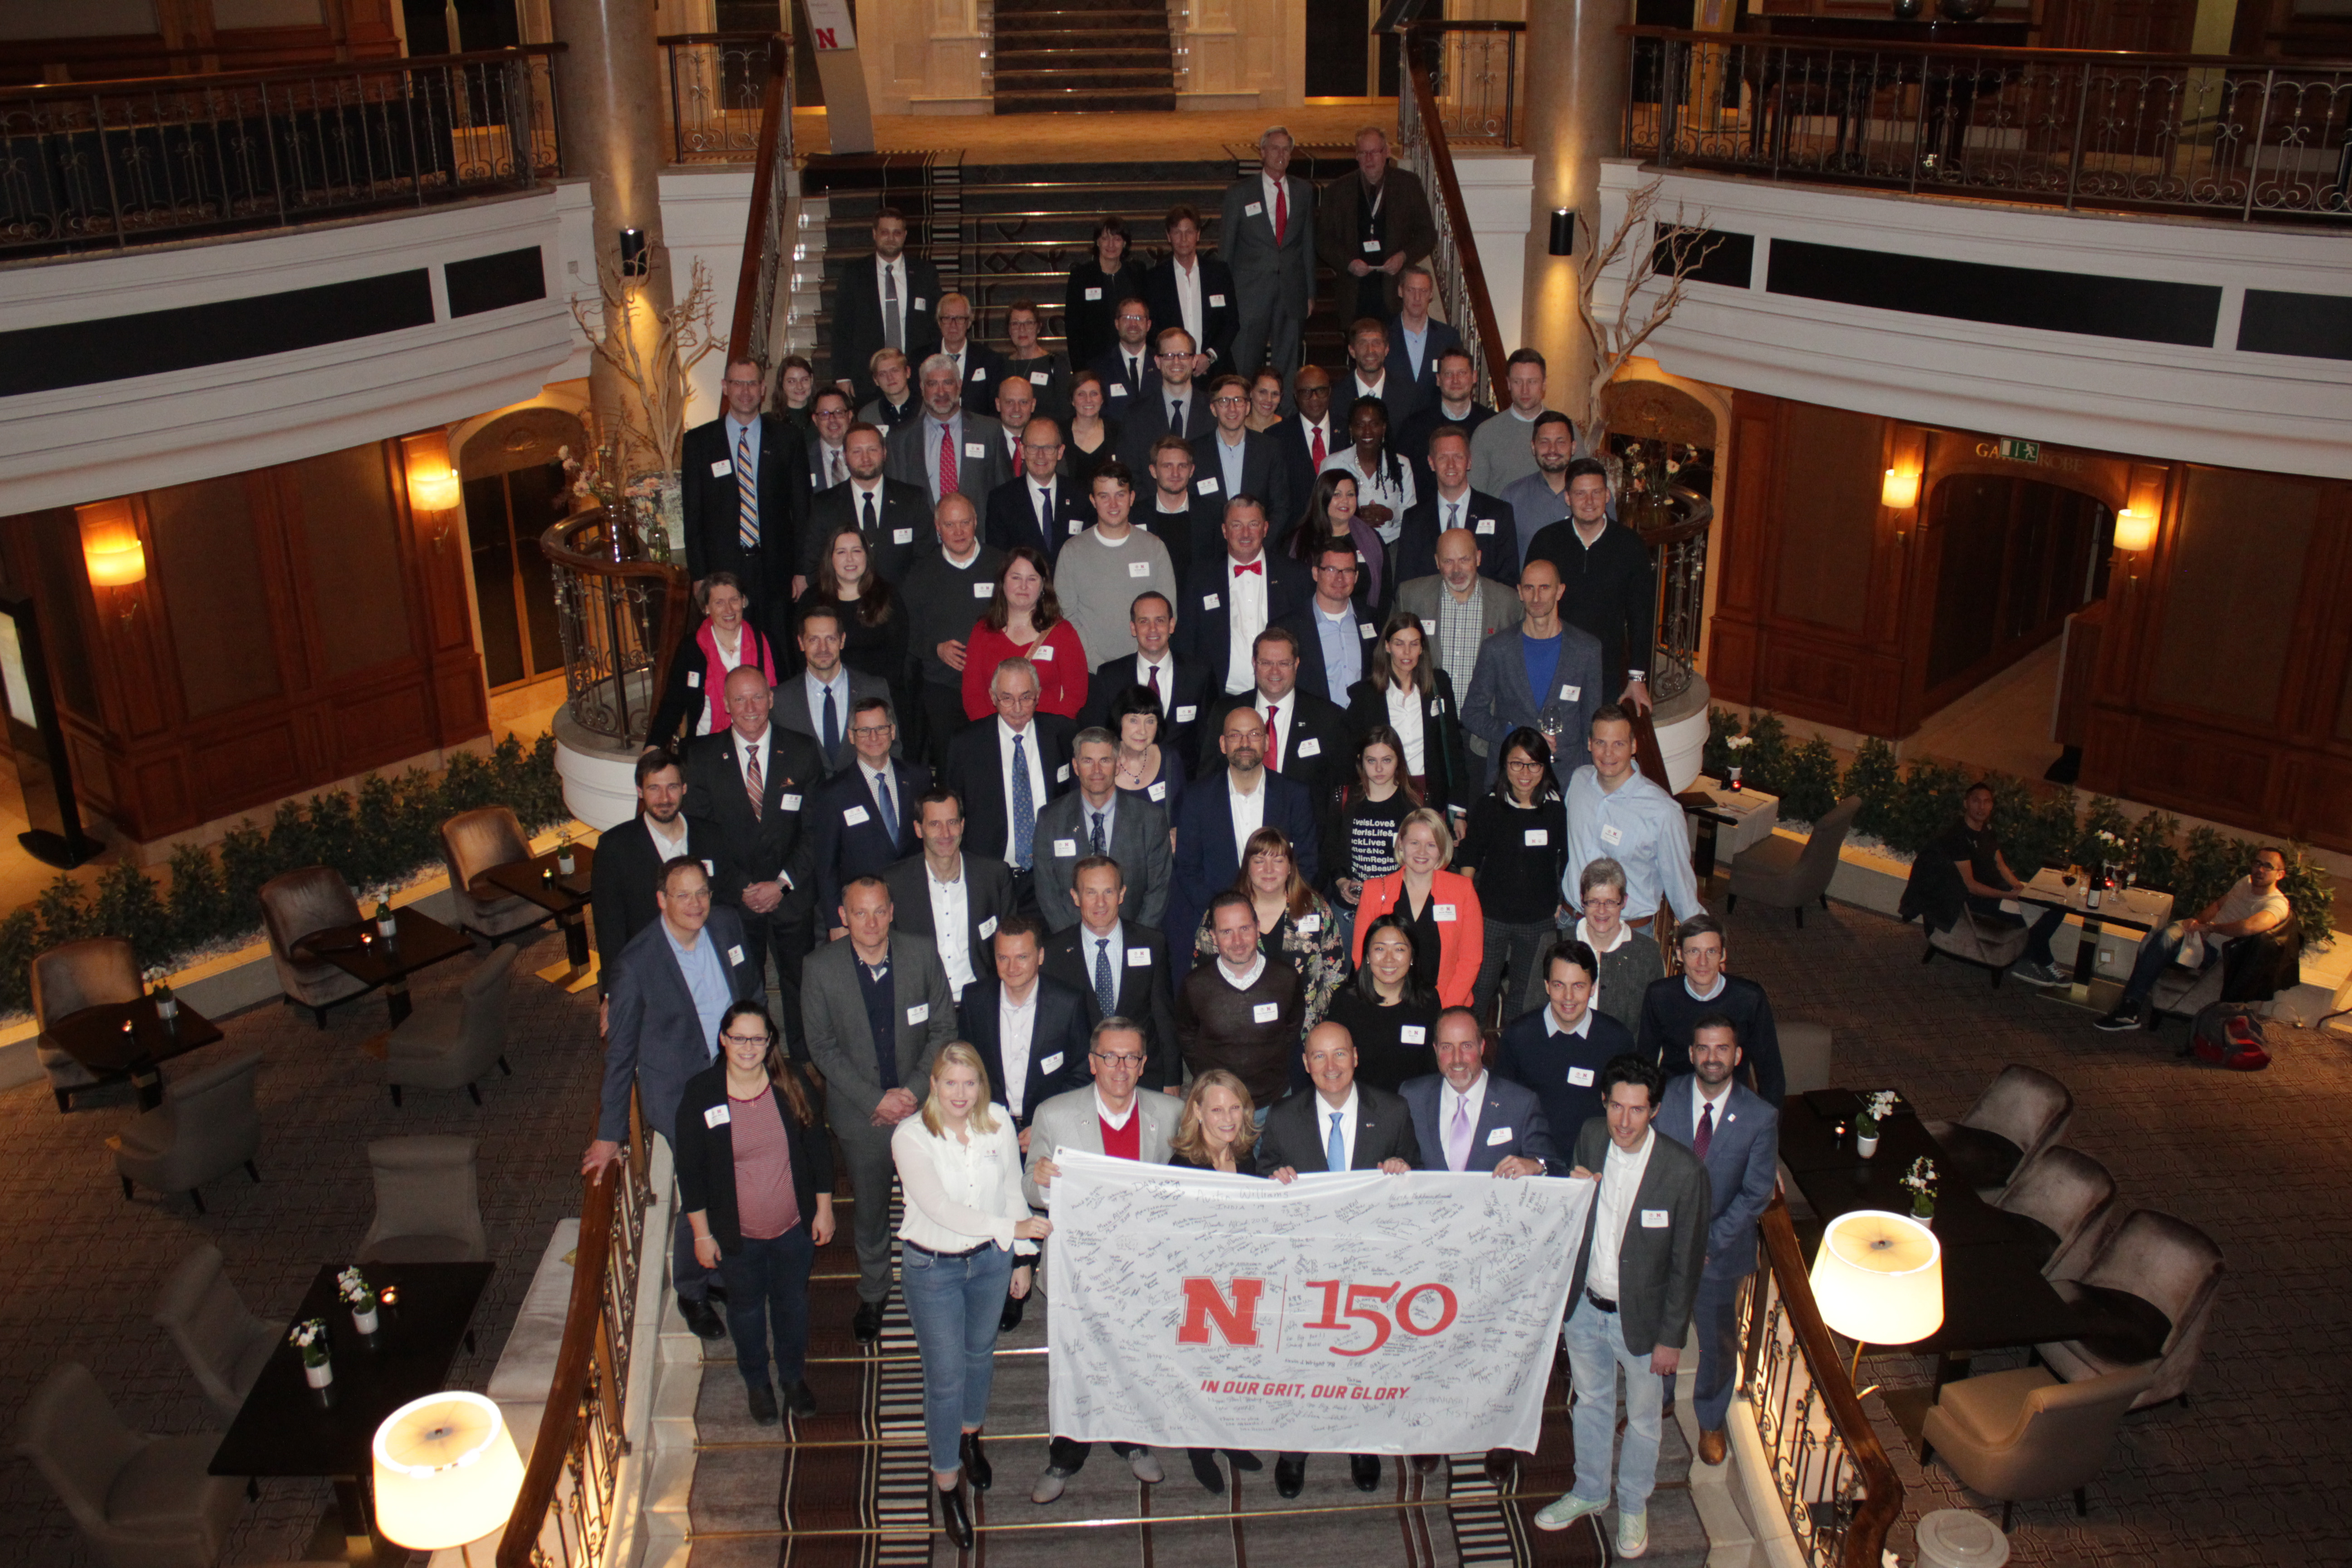 Participants from the Friends and Alumni Reception in Berlin, Germany on November 11 stand with the N150 flag in honor of UNL's 150th anniversary.